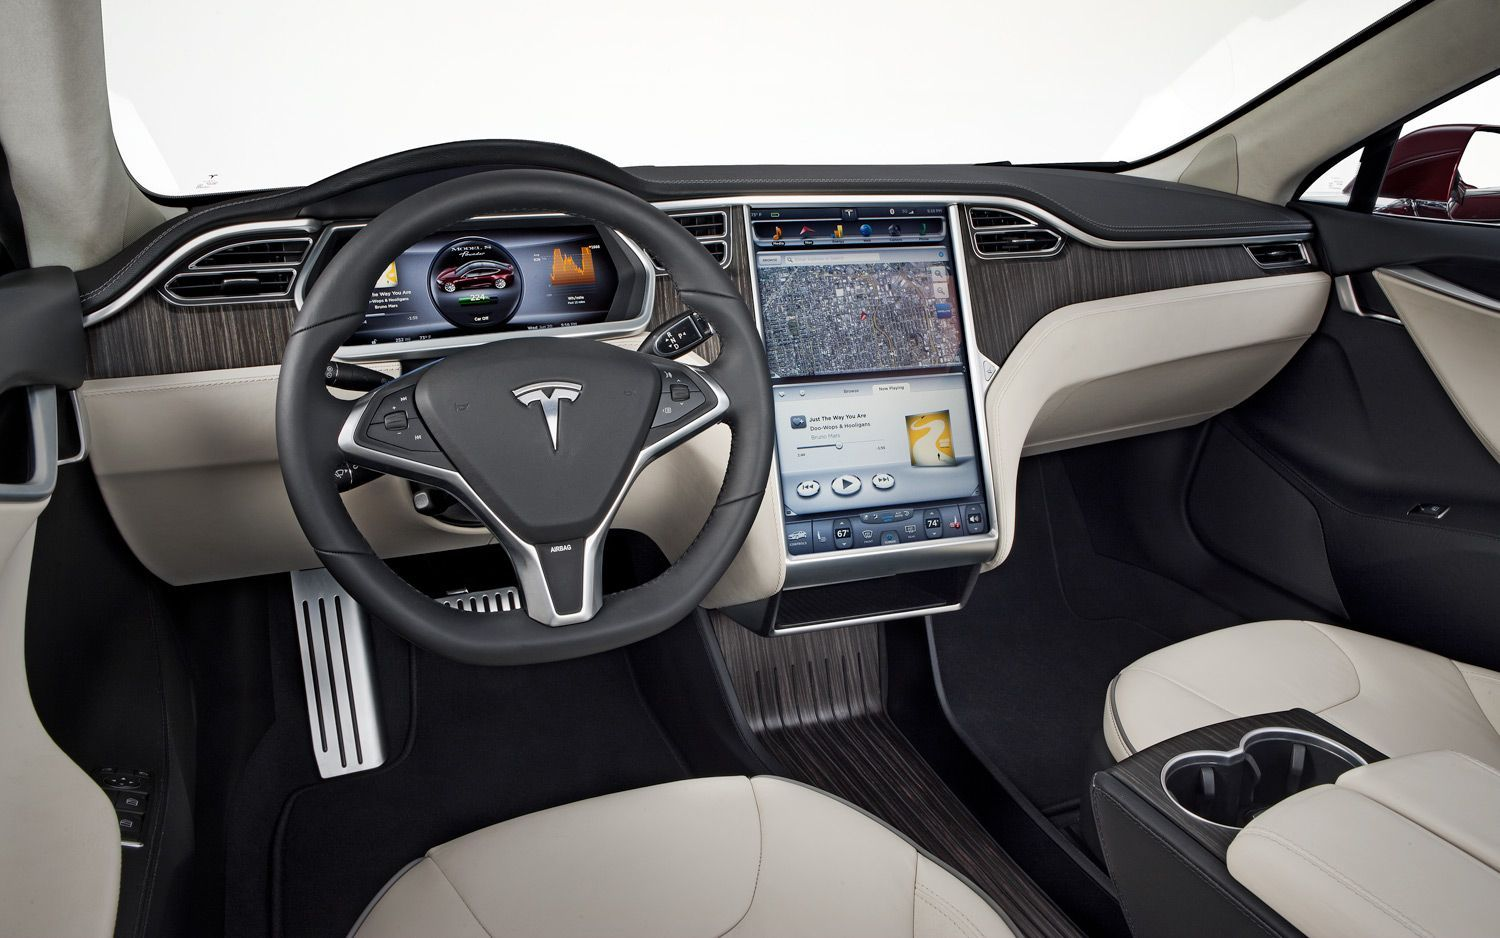 Tesla S Inside Is That A Full Touch Panel Finally Tesla Elektrische Auto S Automerk